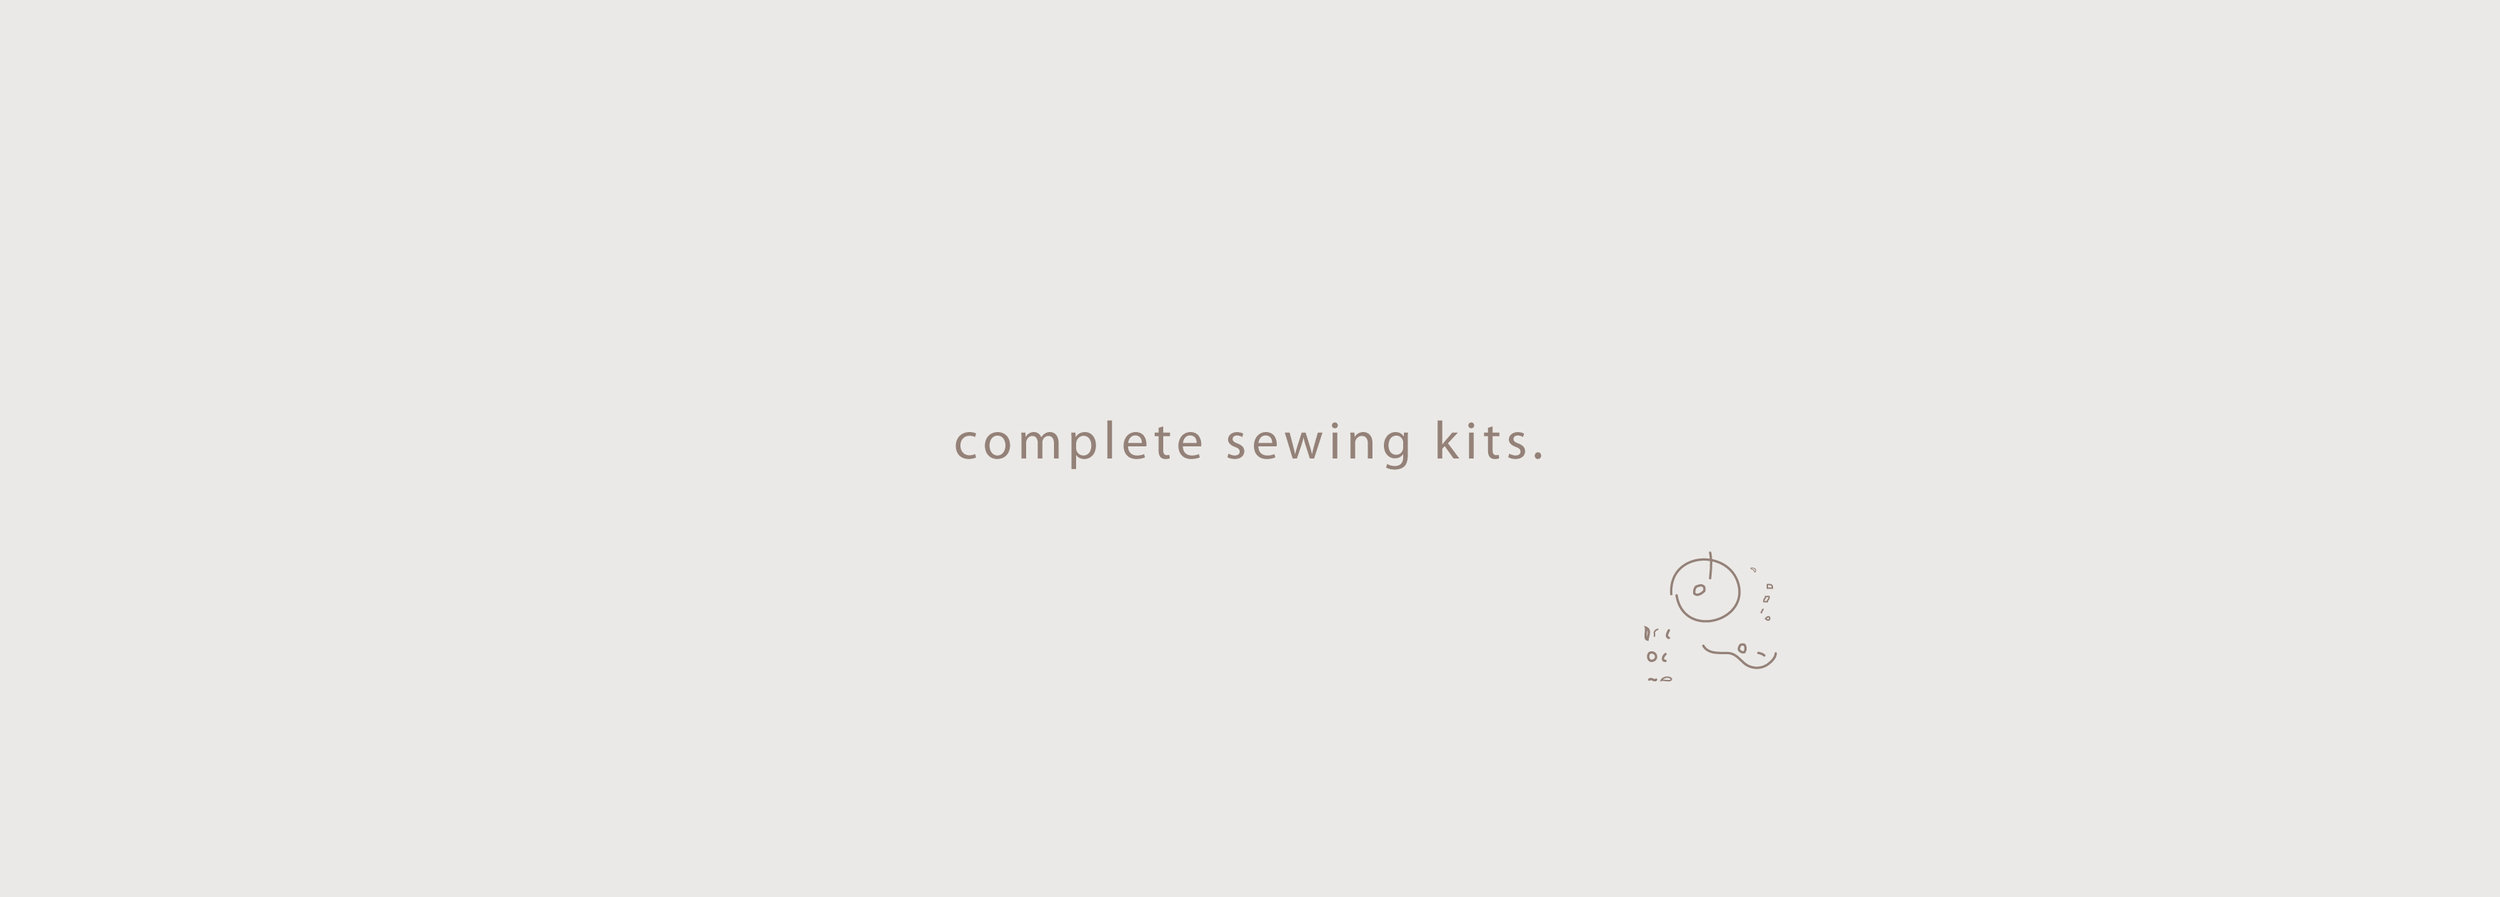 190102_Title_SewingKits.jpg